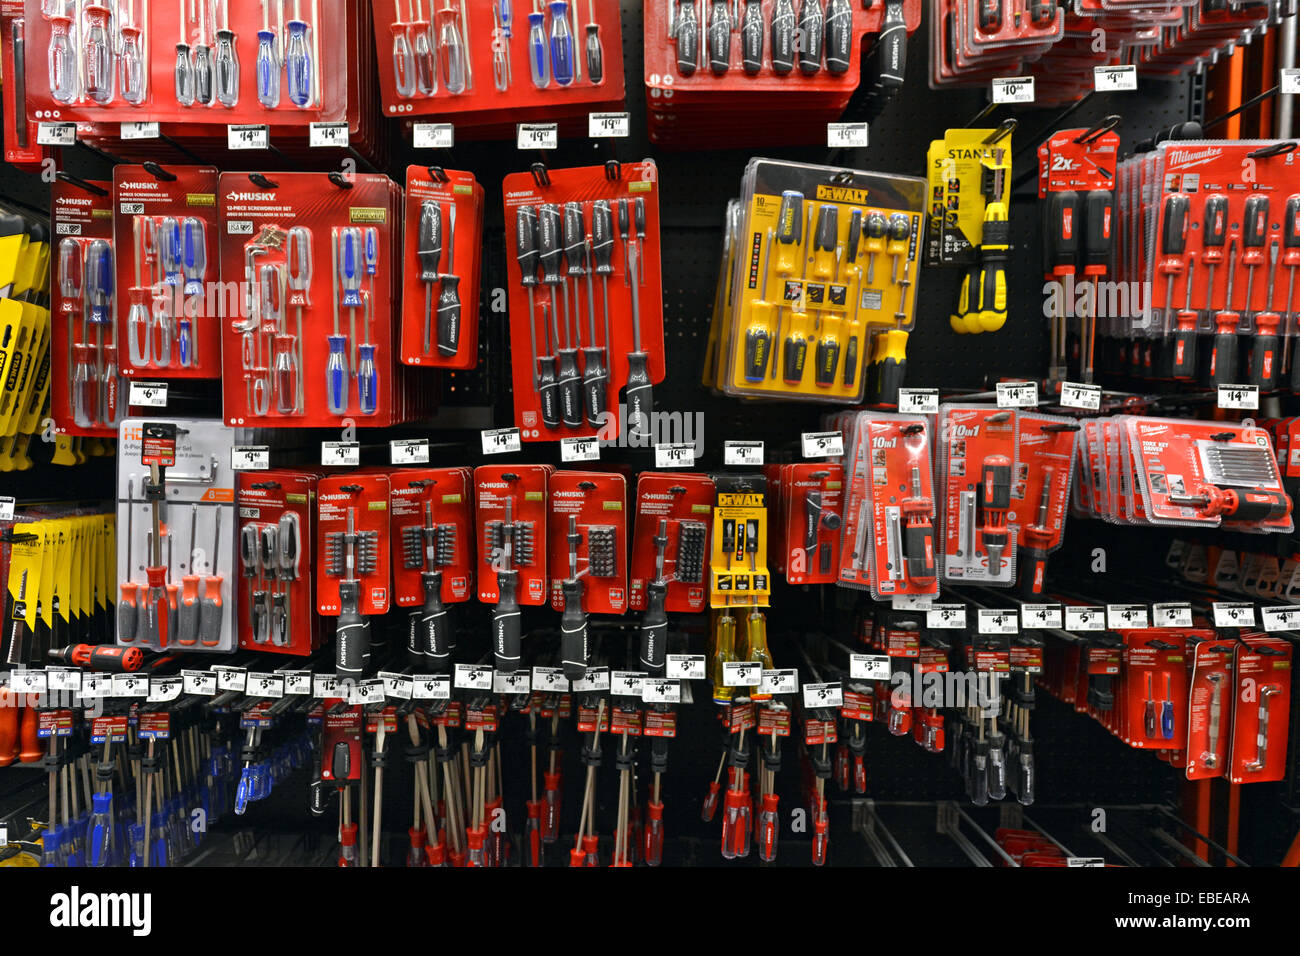 Snap On Tools Home Depot